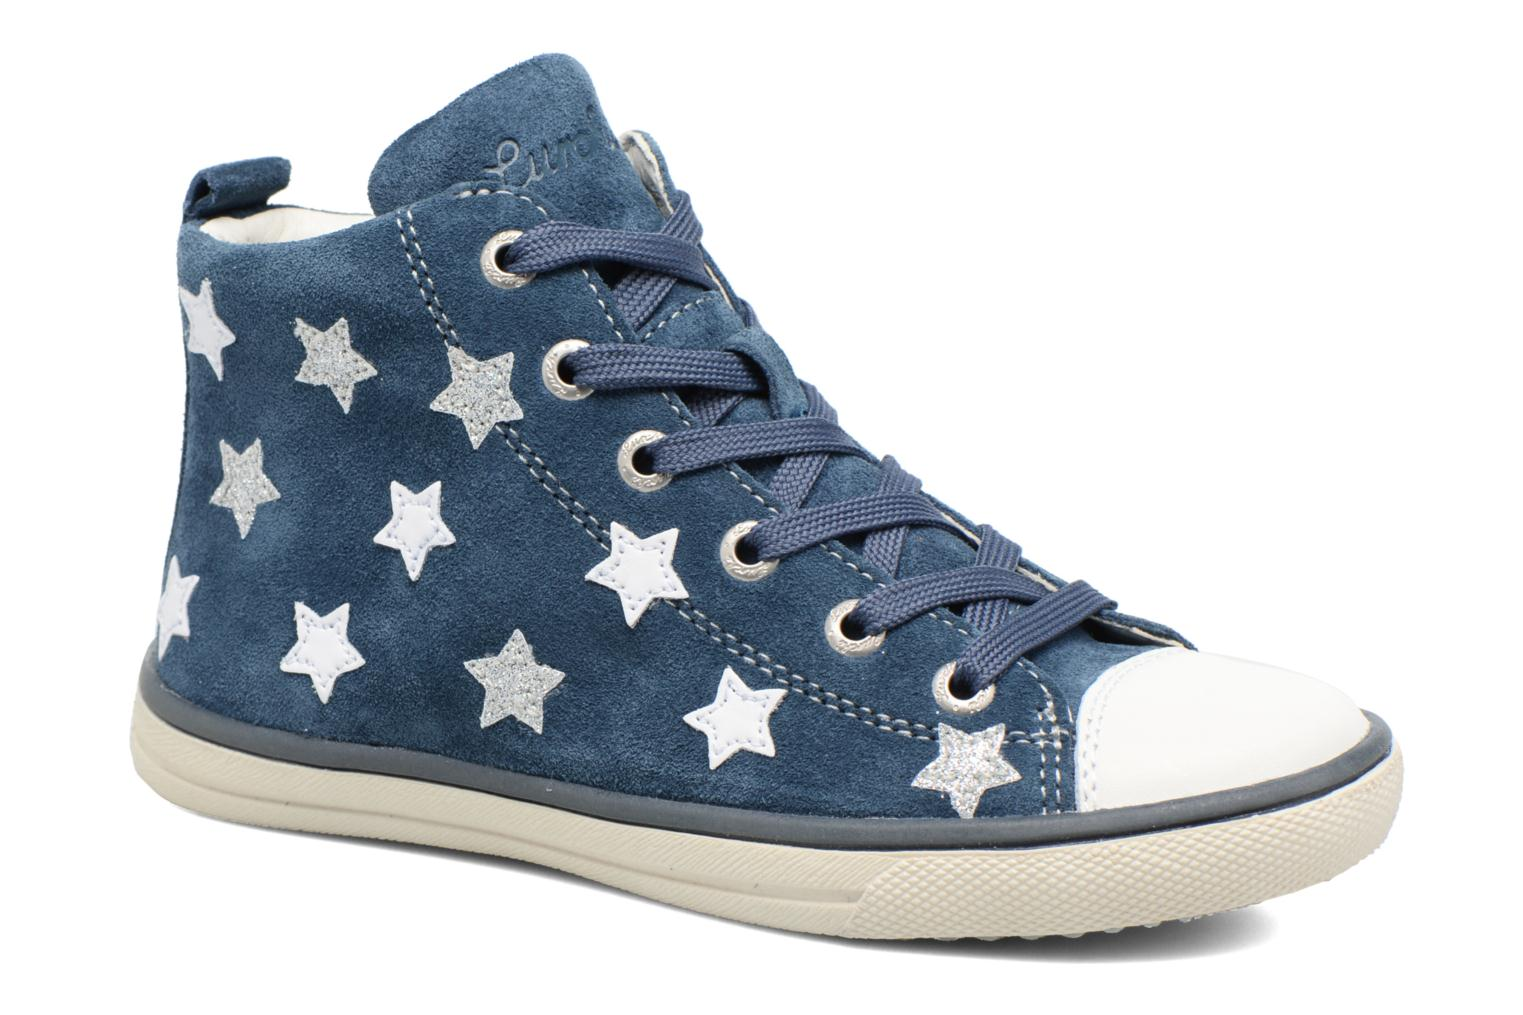 Sneakers Starlet by Lurchi by Salamander